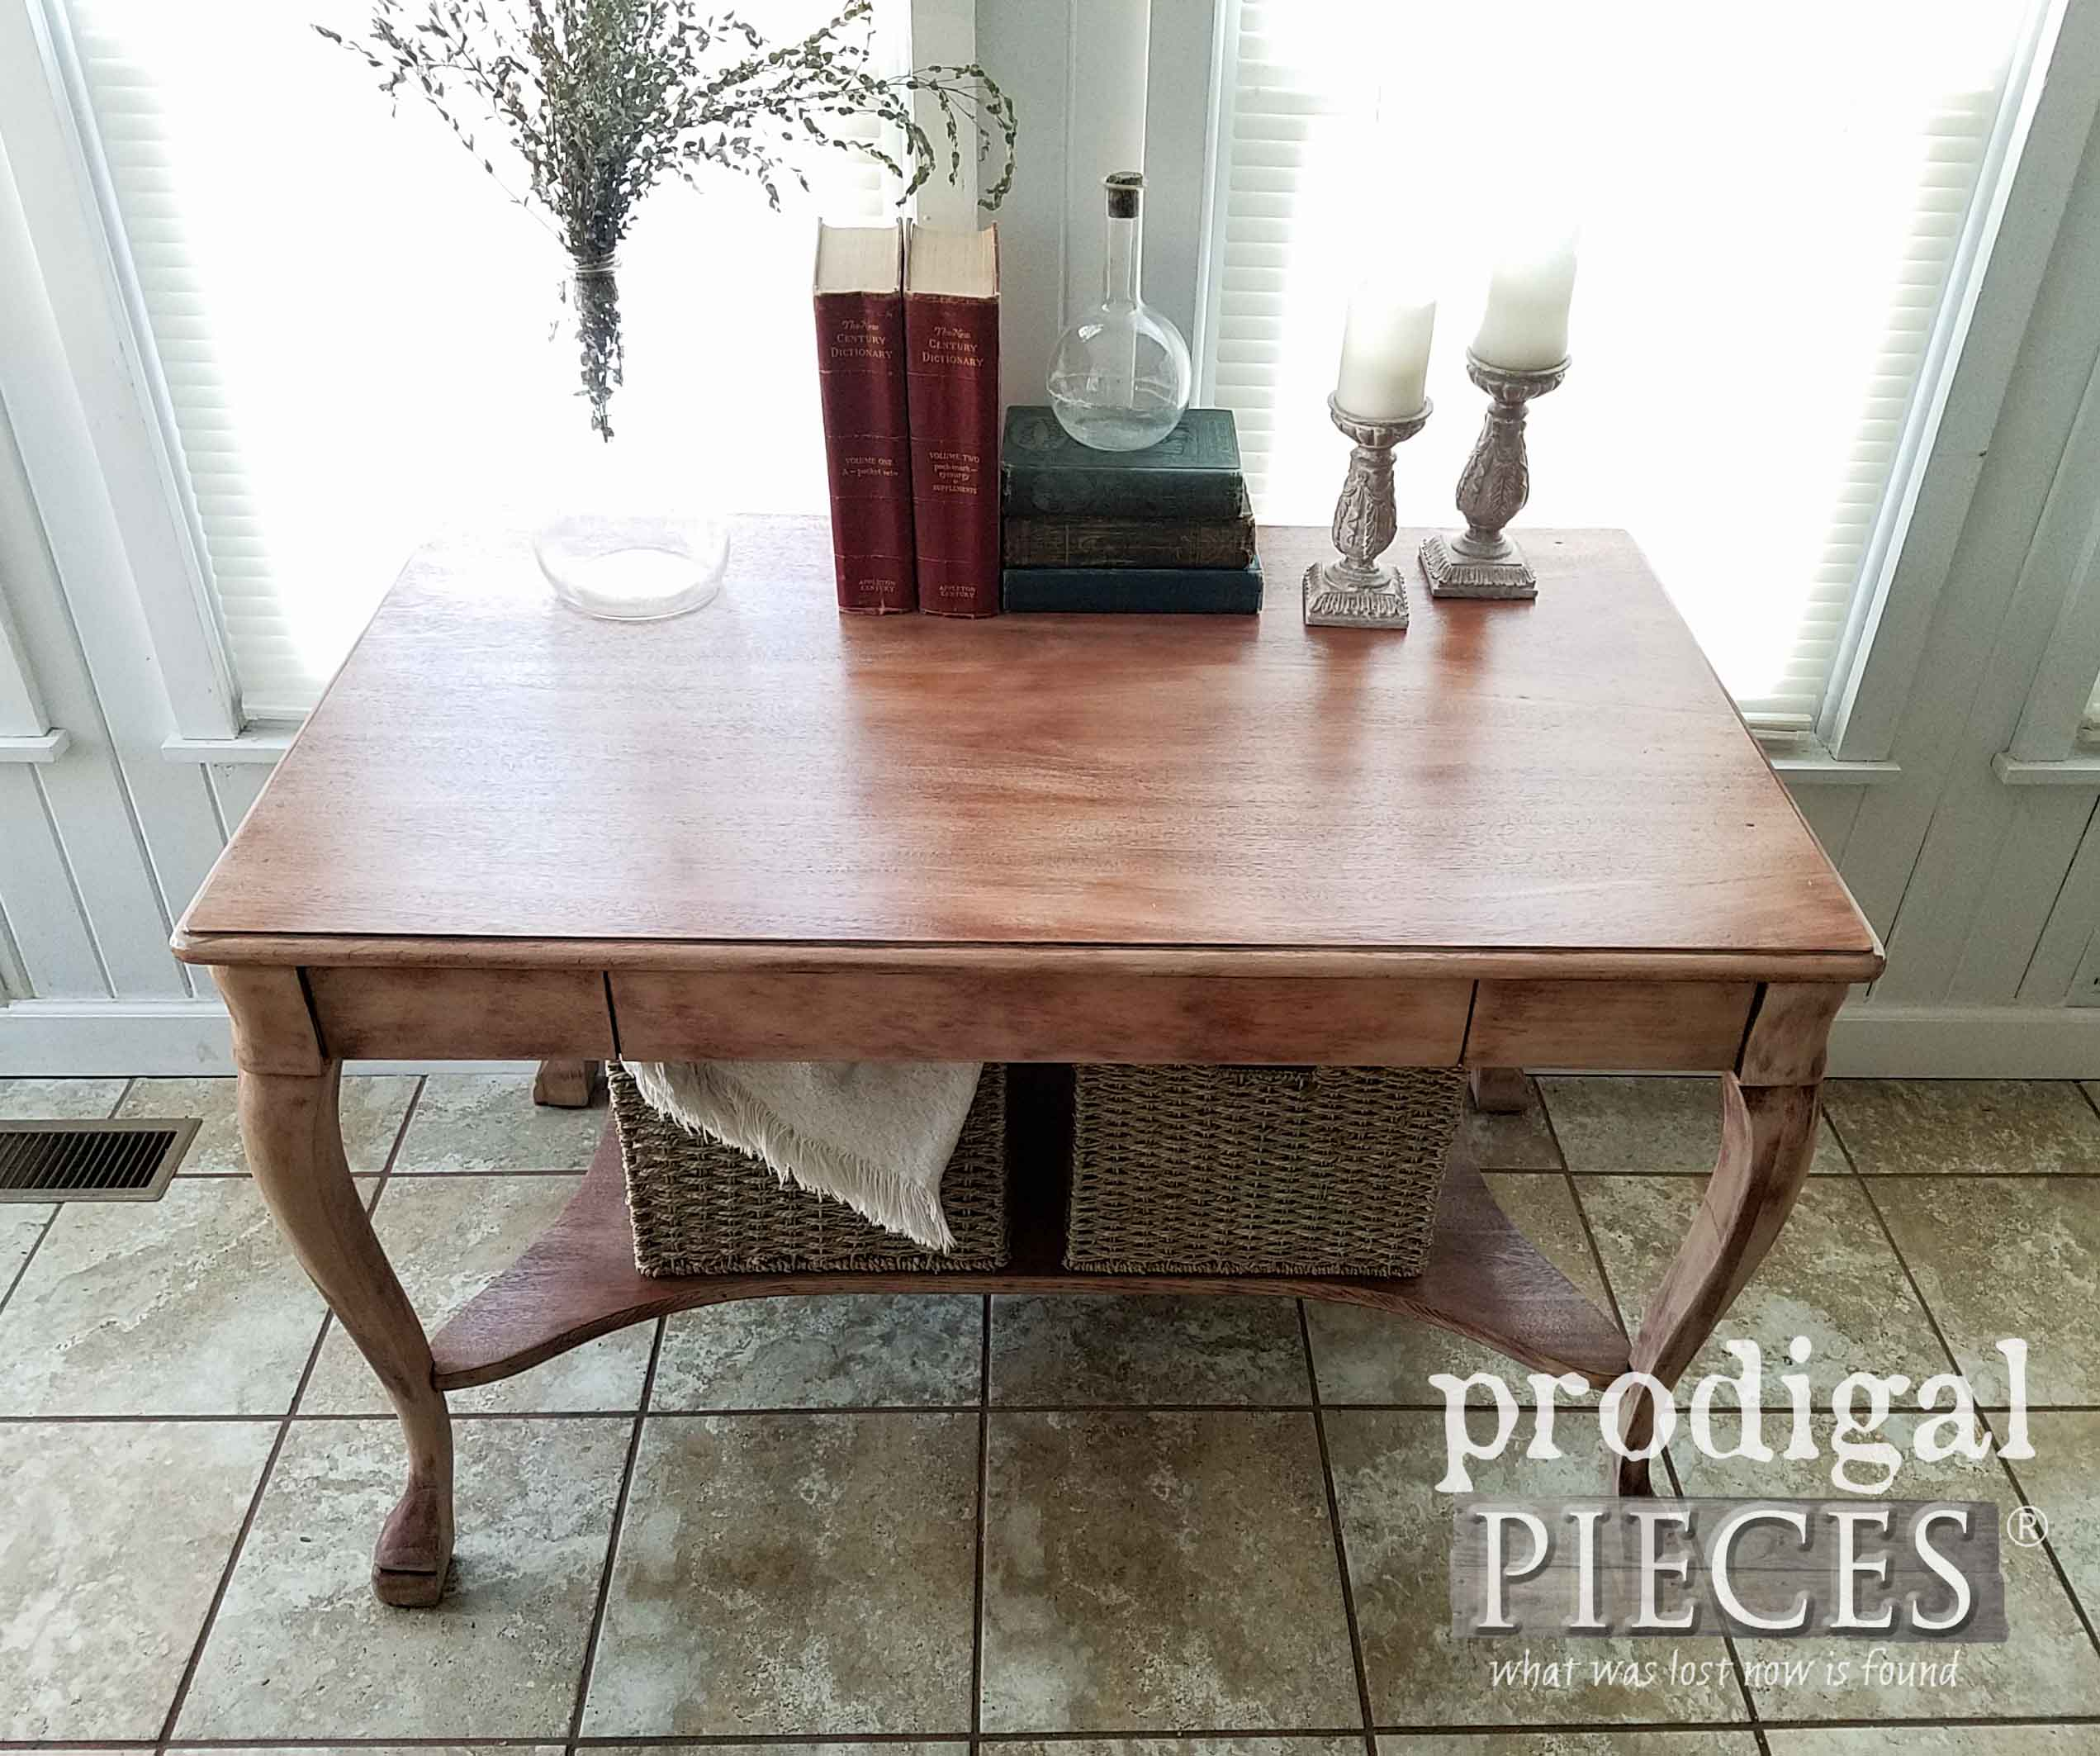 Antique Larkin Co. Library Table restored by Larissa of Prodigal Pieces   prodigalpieces.com